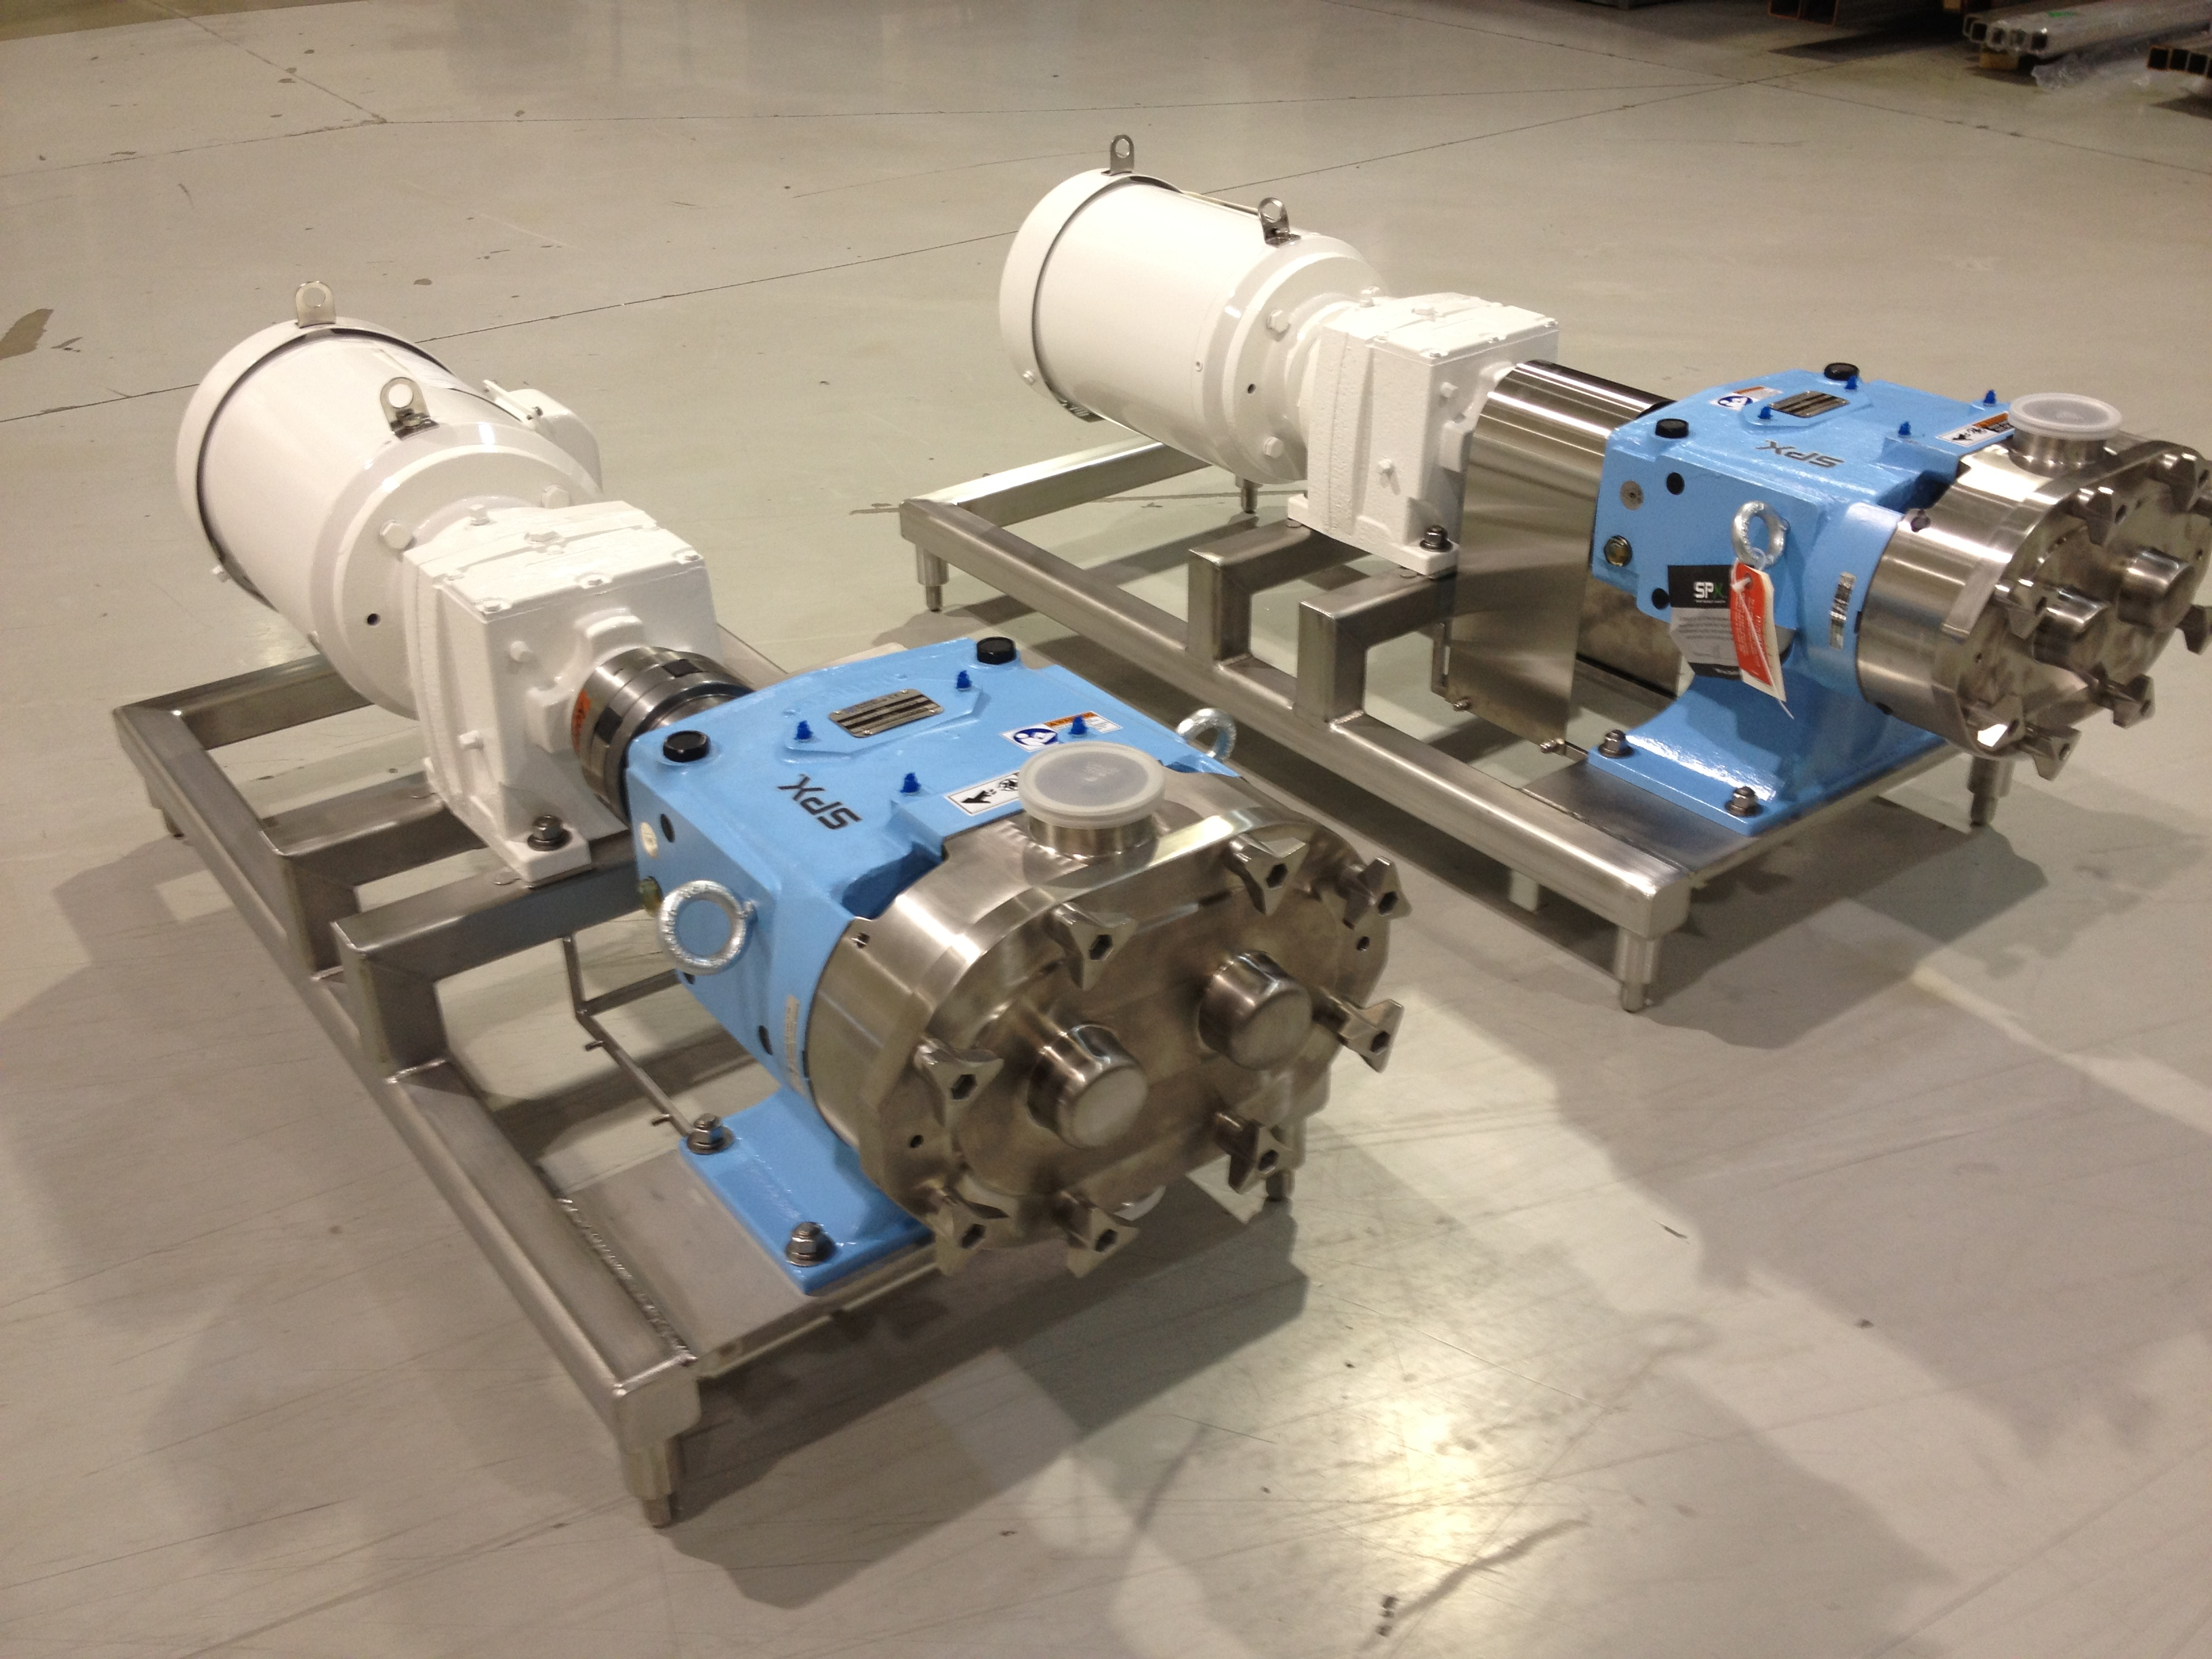 Waukesha U1 60 Pumps Vertically Mounted